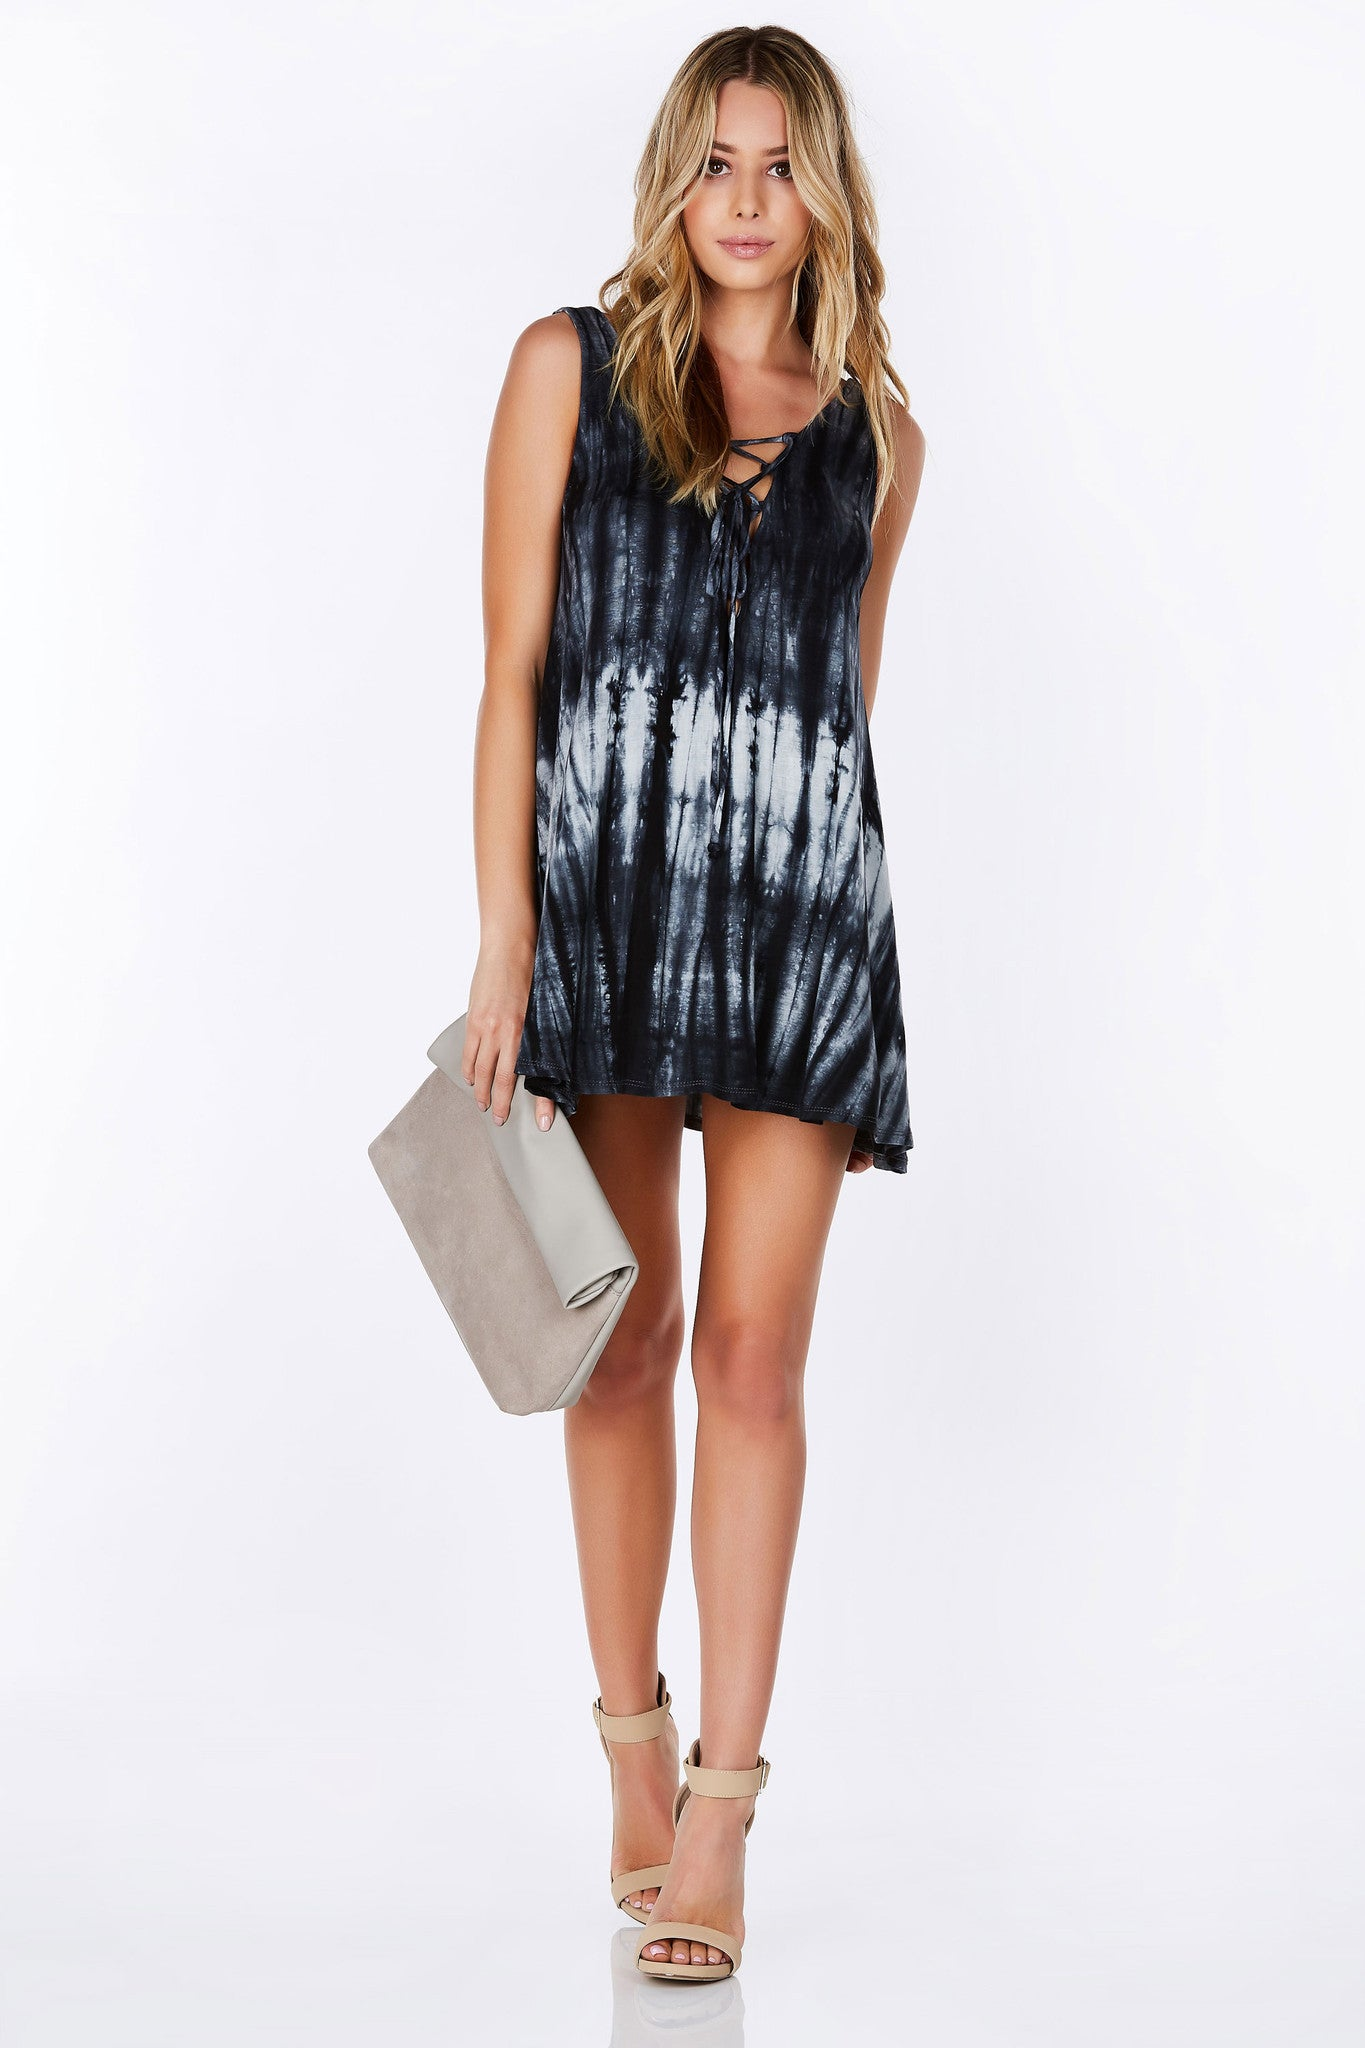 Trendy lace up front with a sexy scooped back. Providing a flattering loose fit, this tie-dye tunic is perfect to pair with skinny jeans or simply throw on over a bathingsuit. Keep cool and chic all Summer long by adding this to your wardrobe.